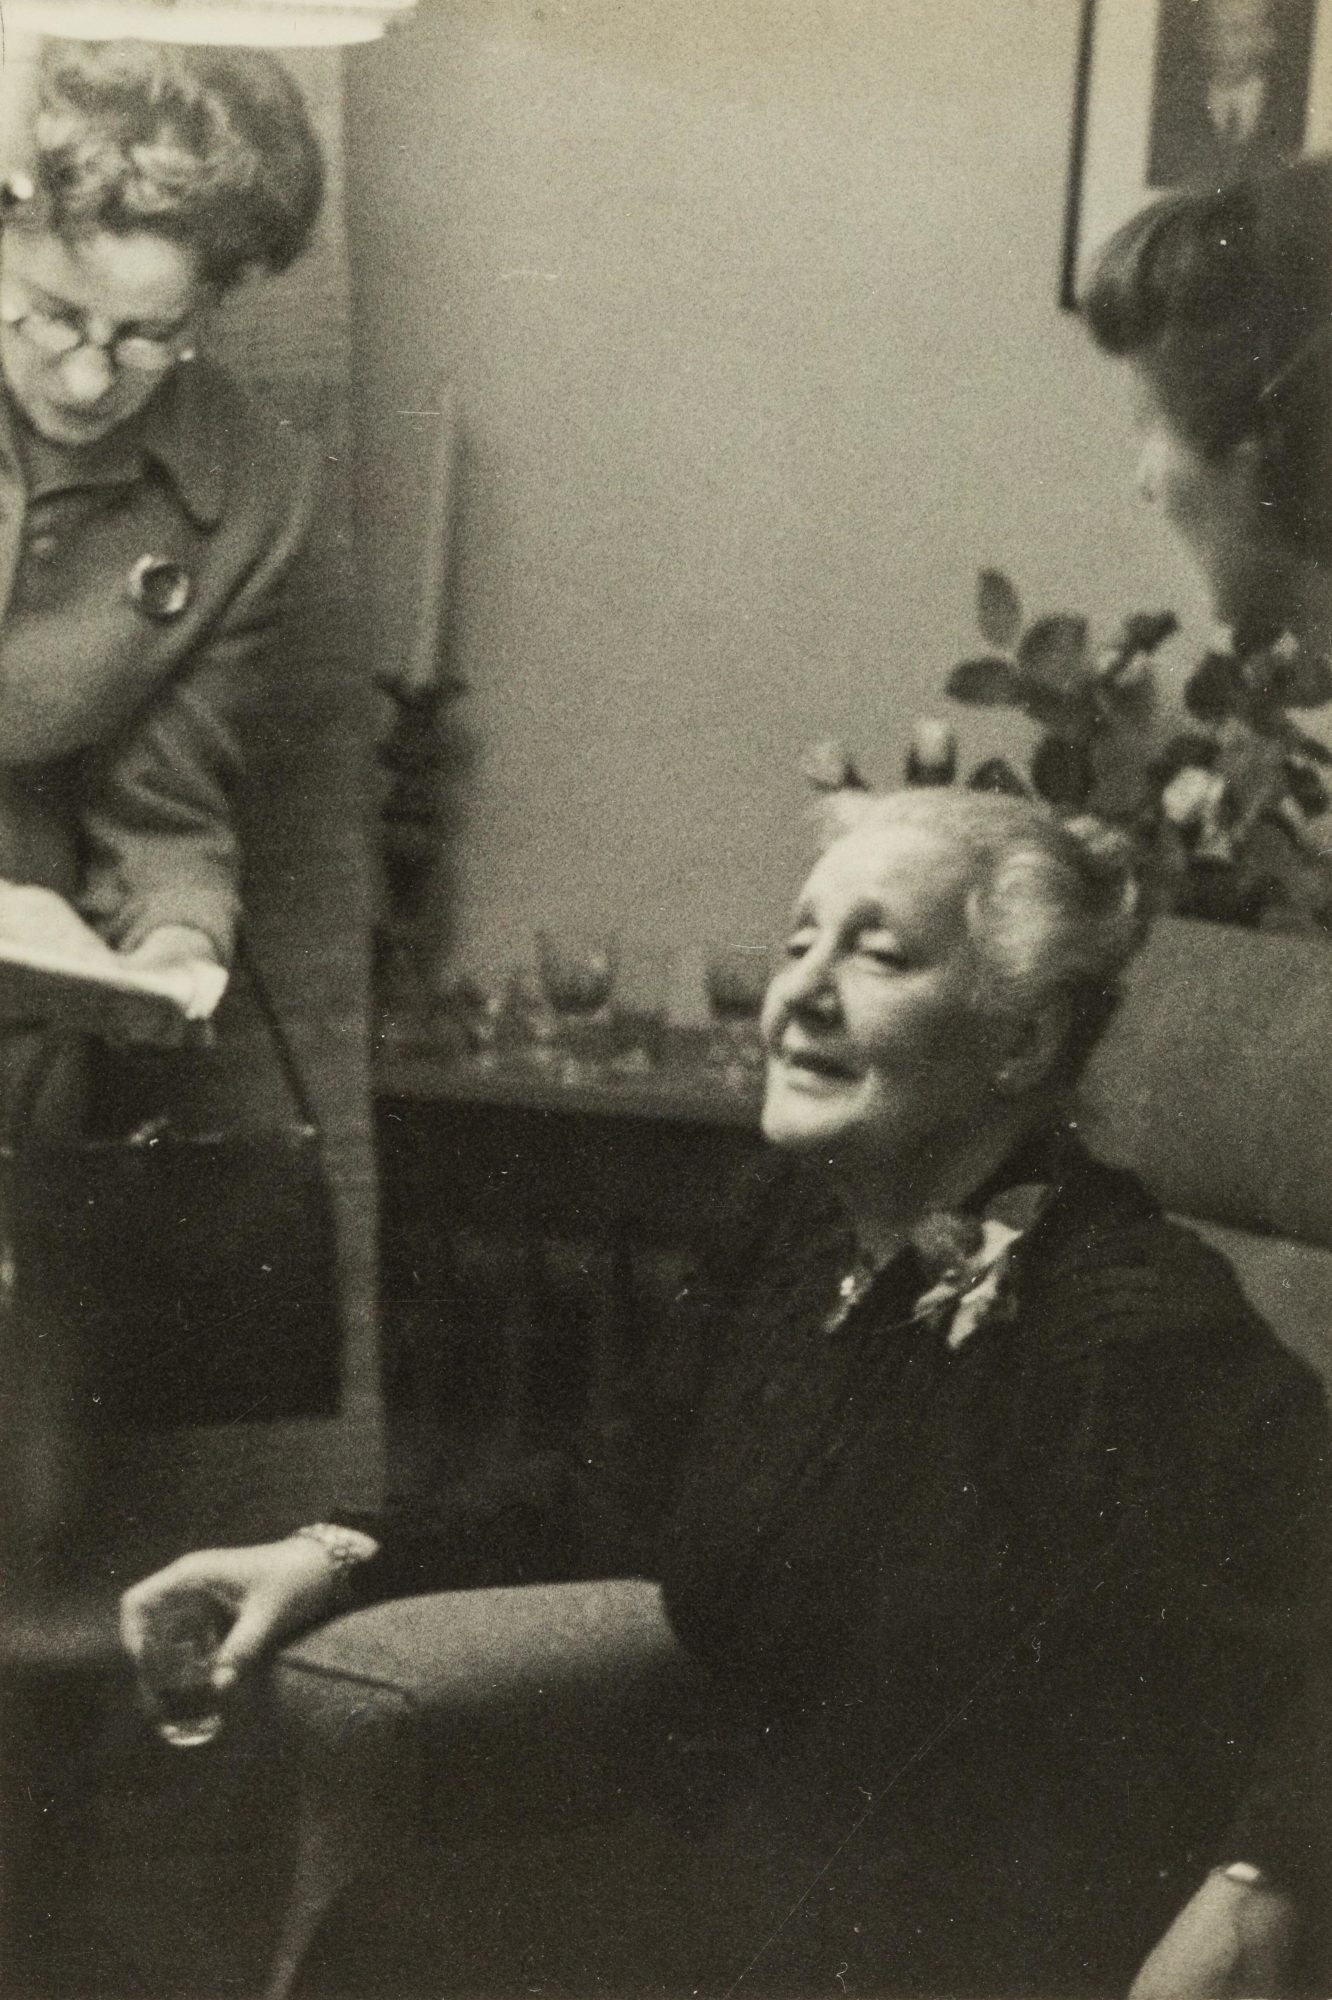 Photograph of Melanie Klein around 1950